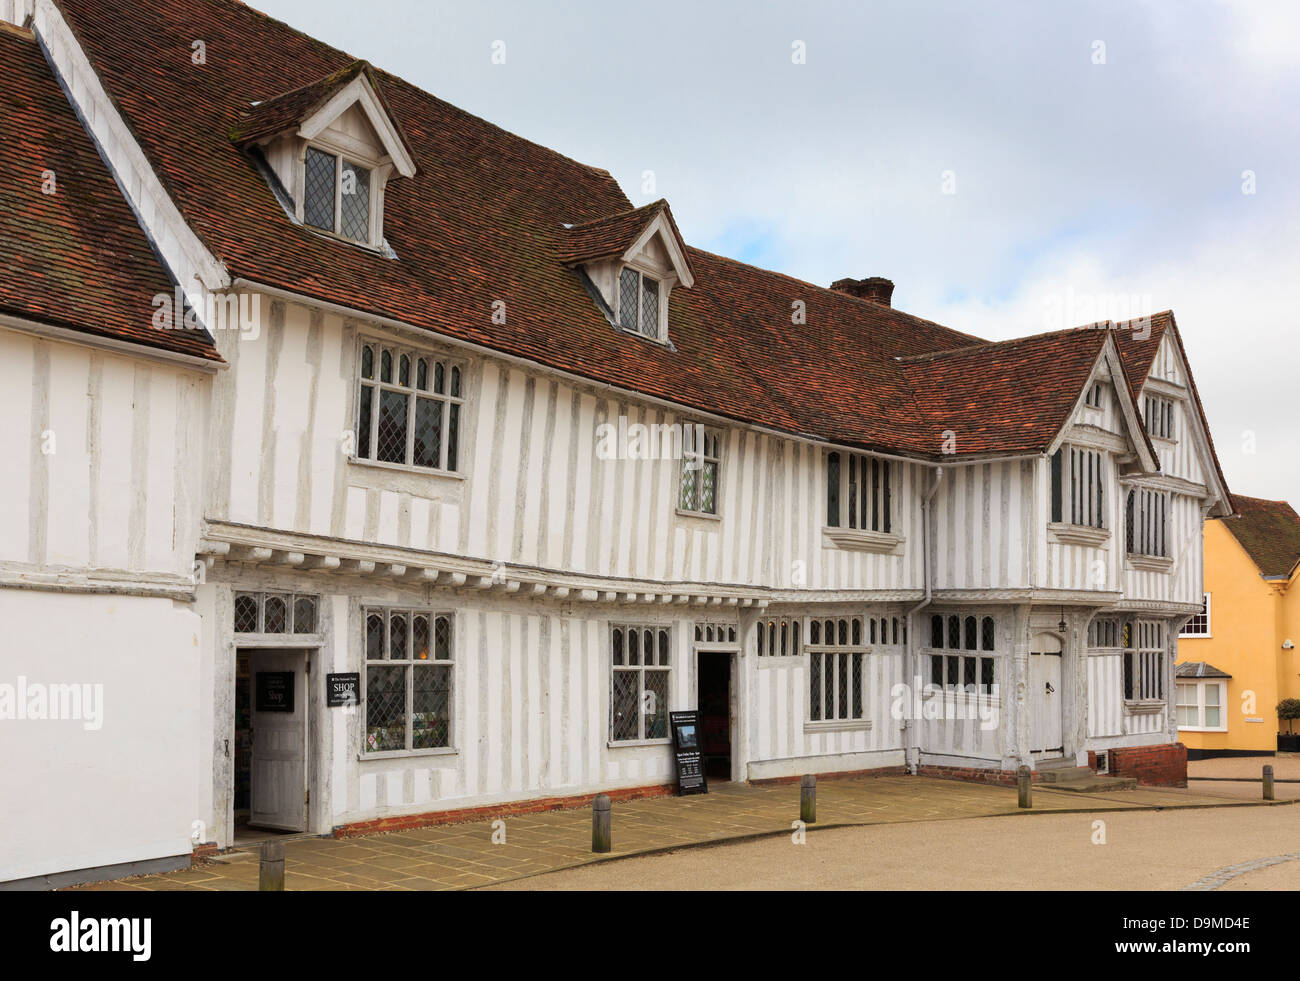 Guildhall of wool guild of Corpus Christi in a 16thc Tudor timbered building in medieval village Lavenham Suffolk - Stock Image